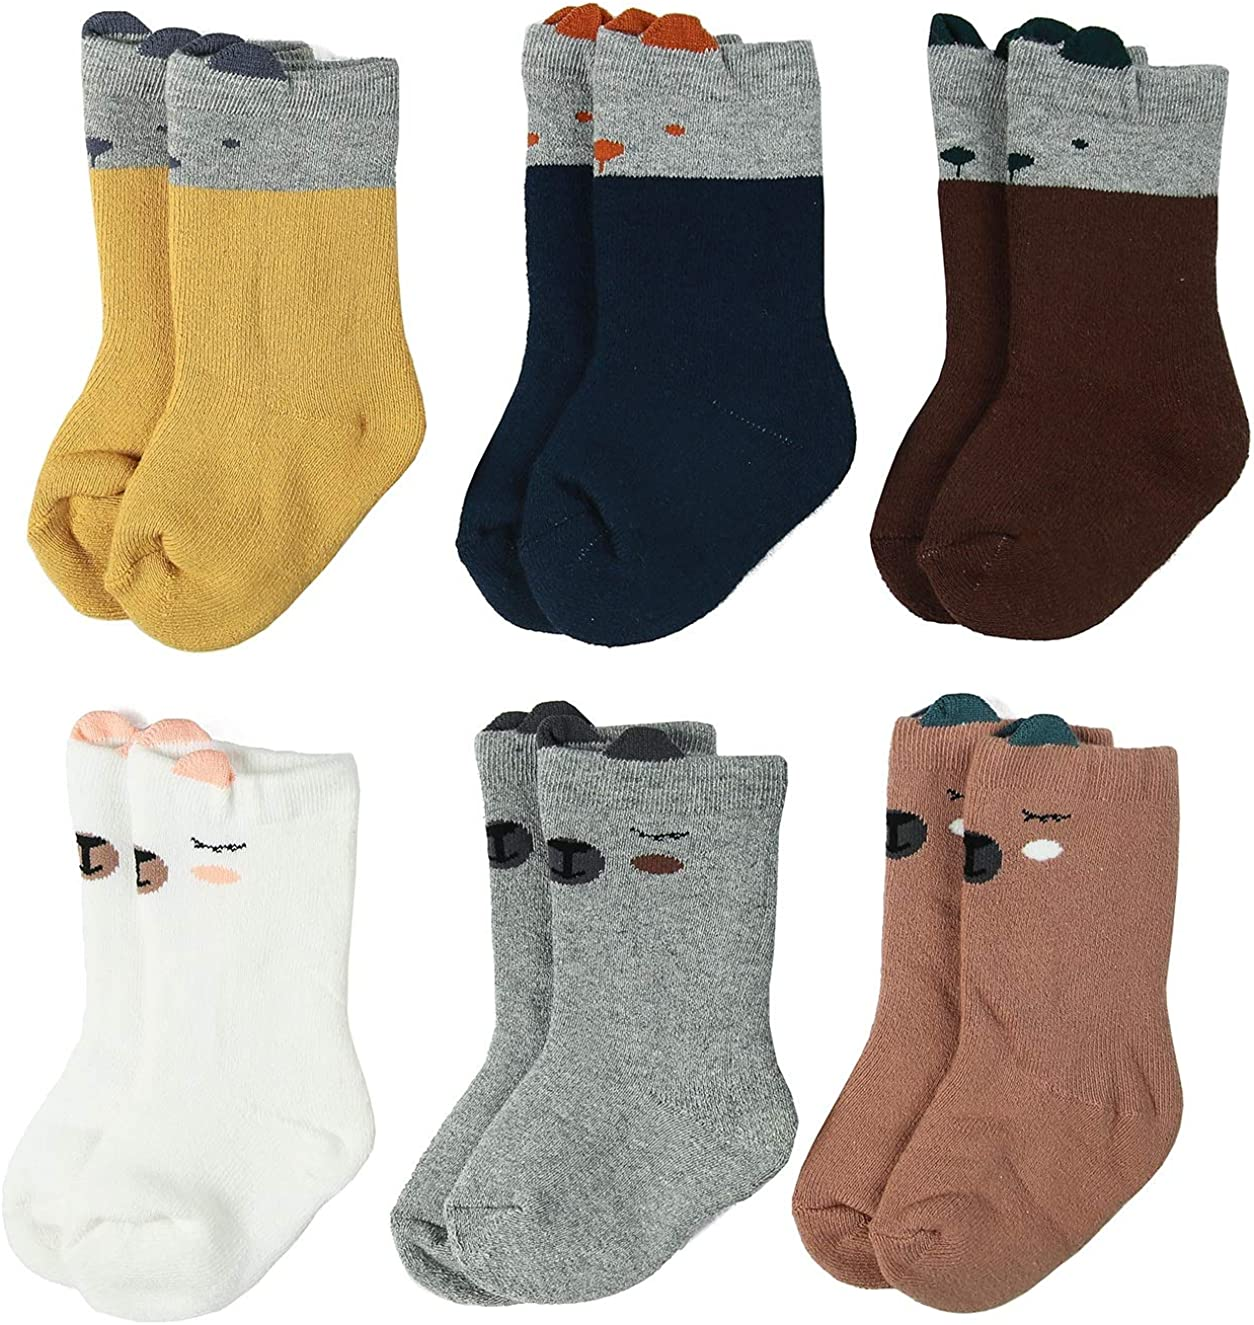 QA/_ Newborn Baby Girl Cotton Tights Pantyhose Warm Tights For Baby Stockings G